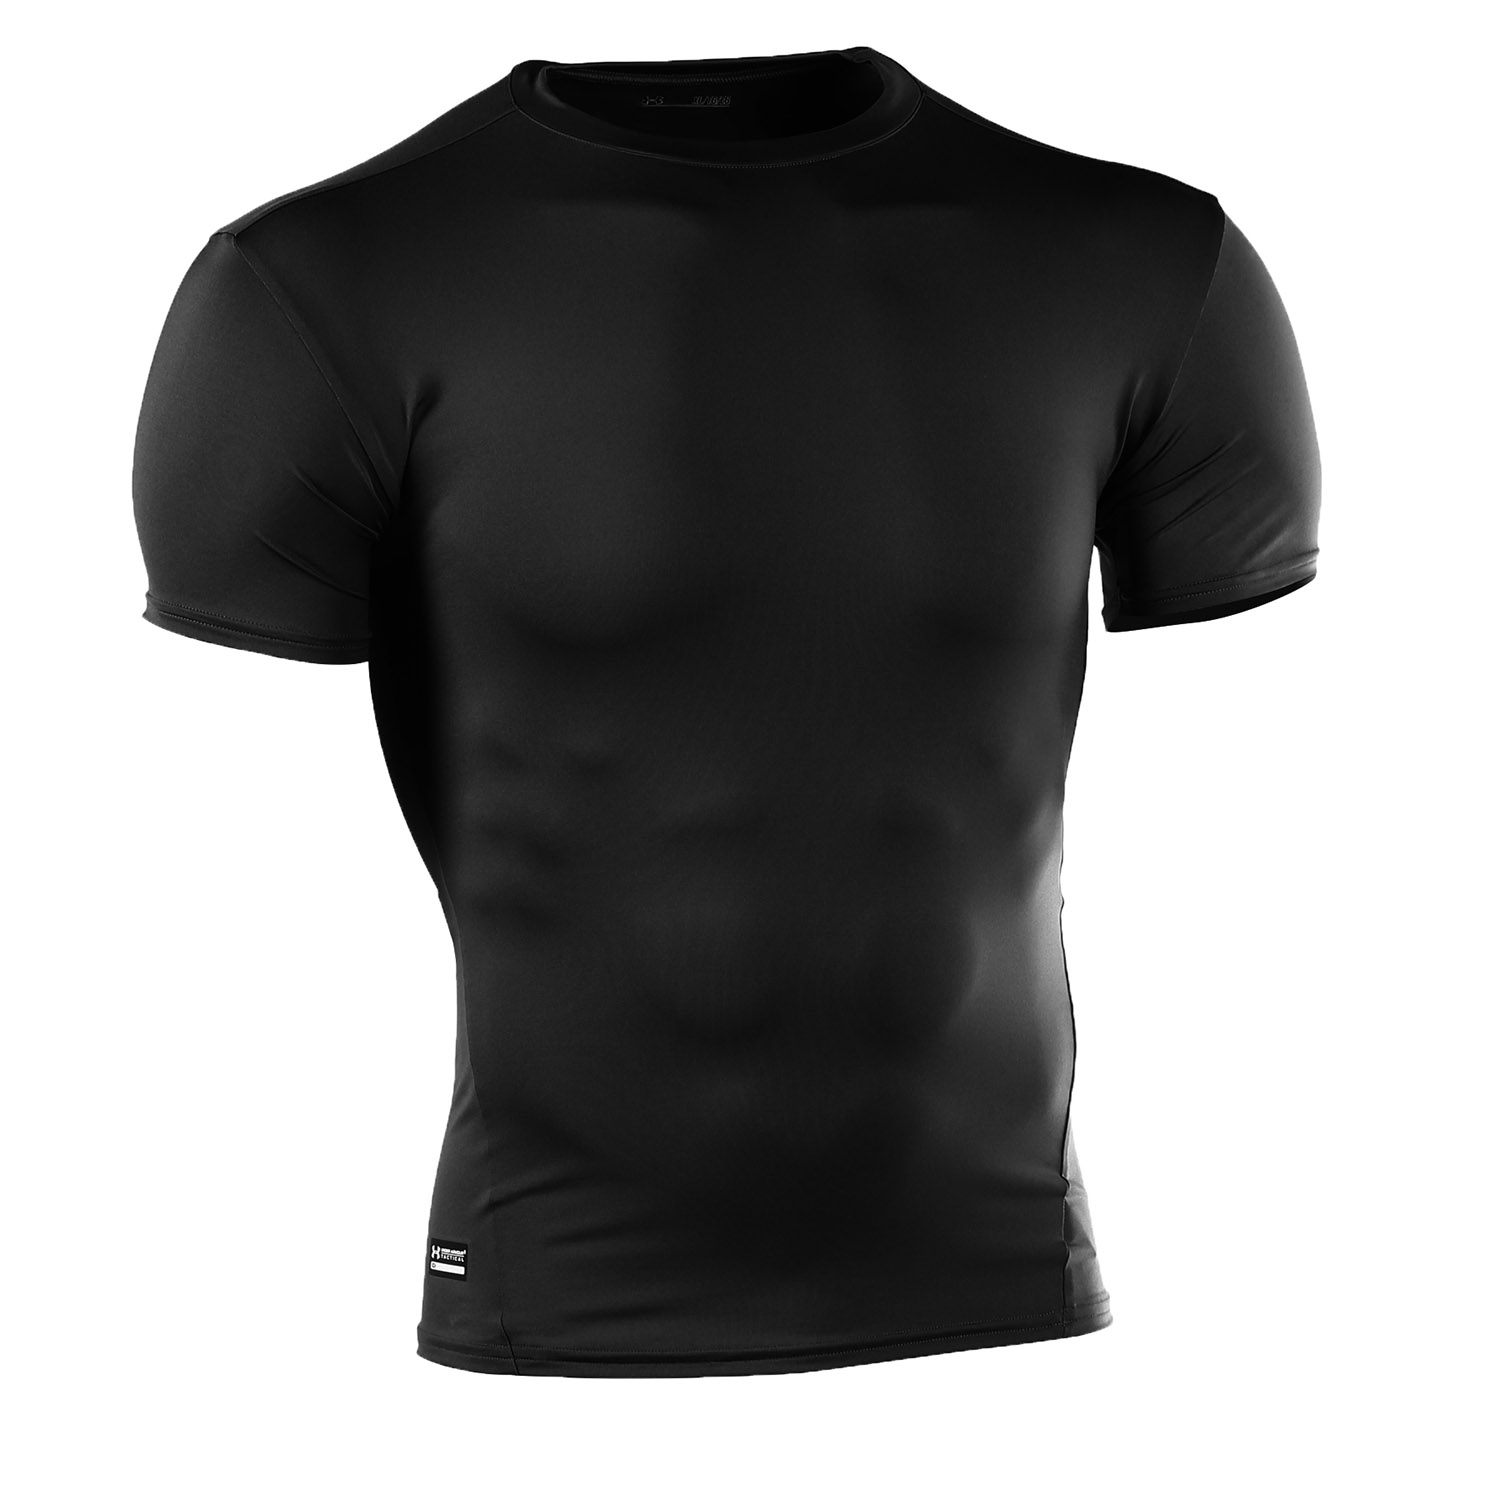 Under armour heatgear compression t shirt for Under armour i will shirt